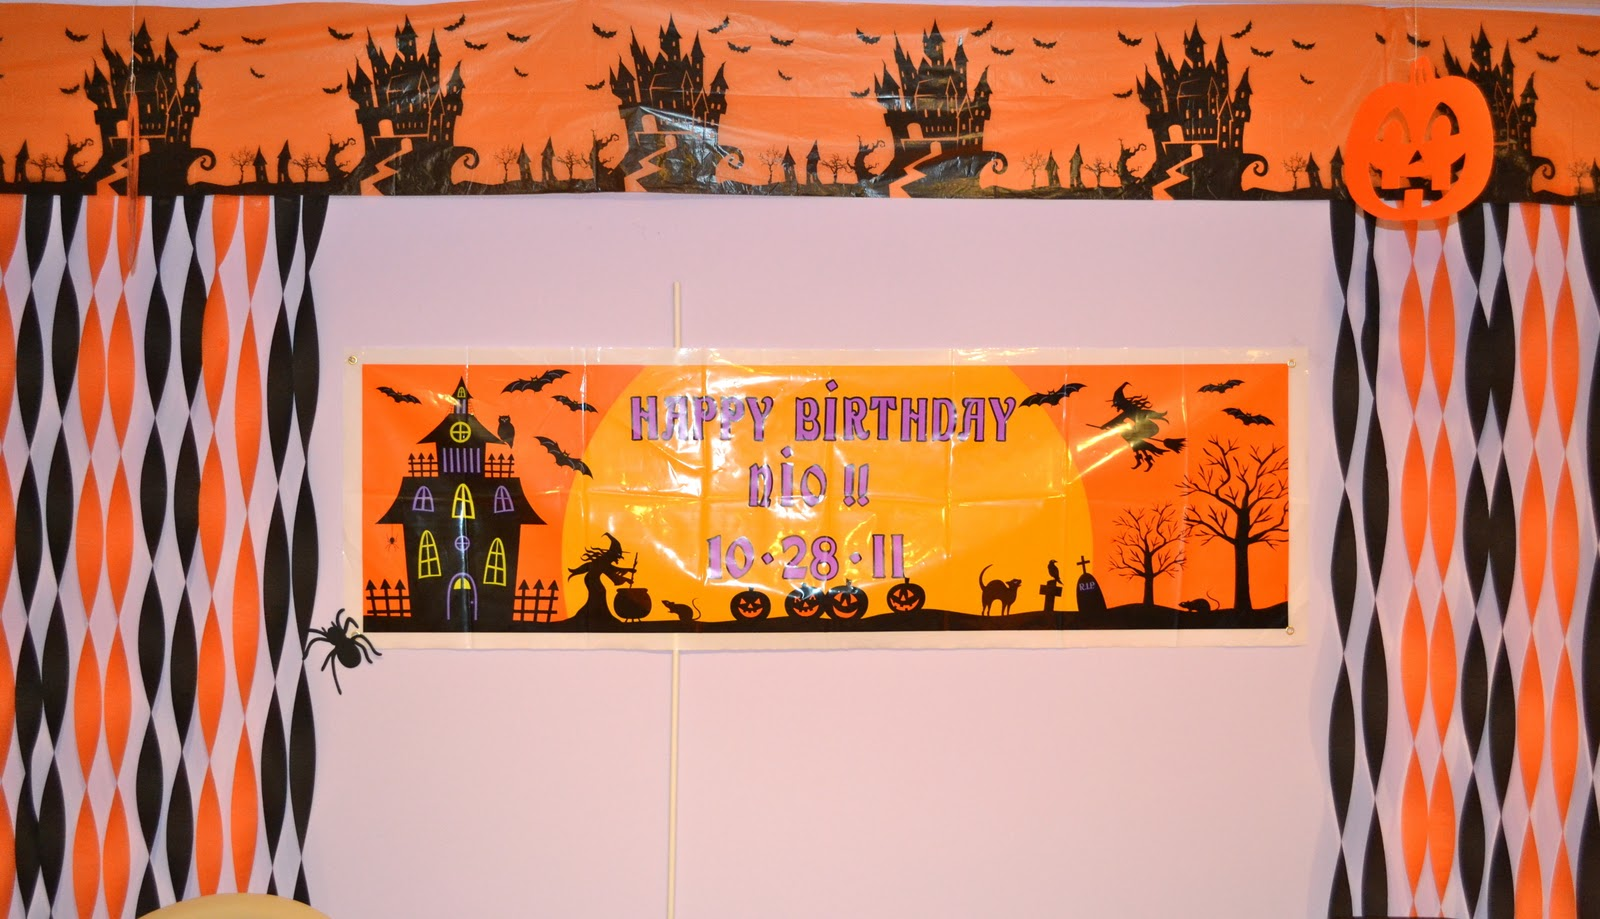 Life Home at 2102 Nio39s 11th Halloween Birthday Party